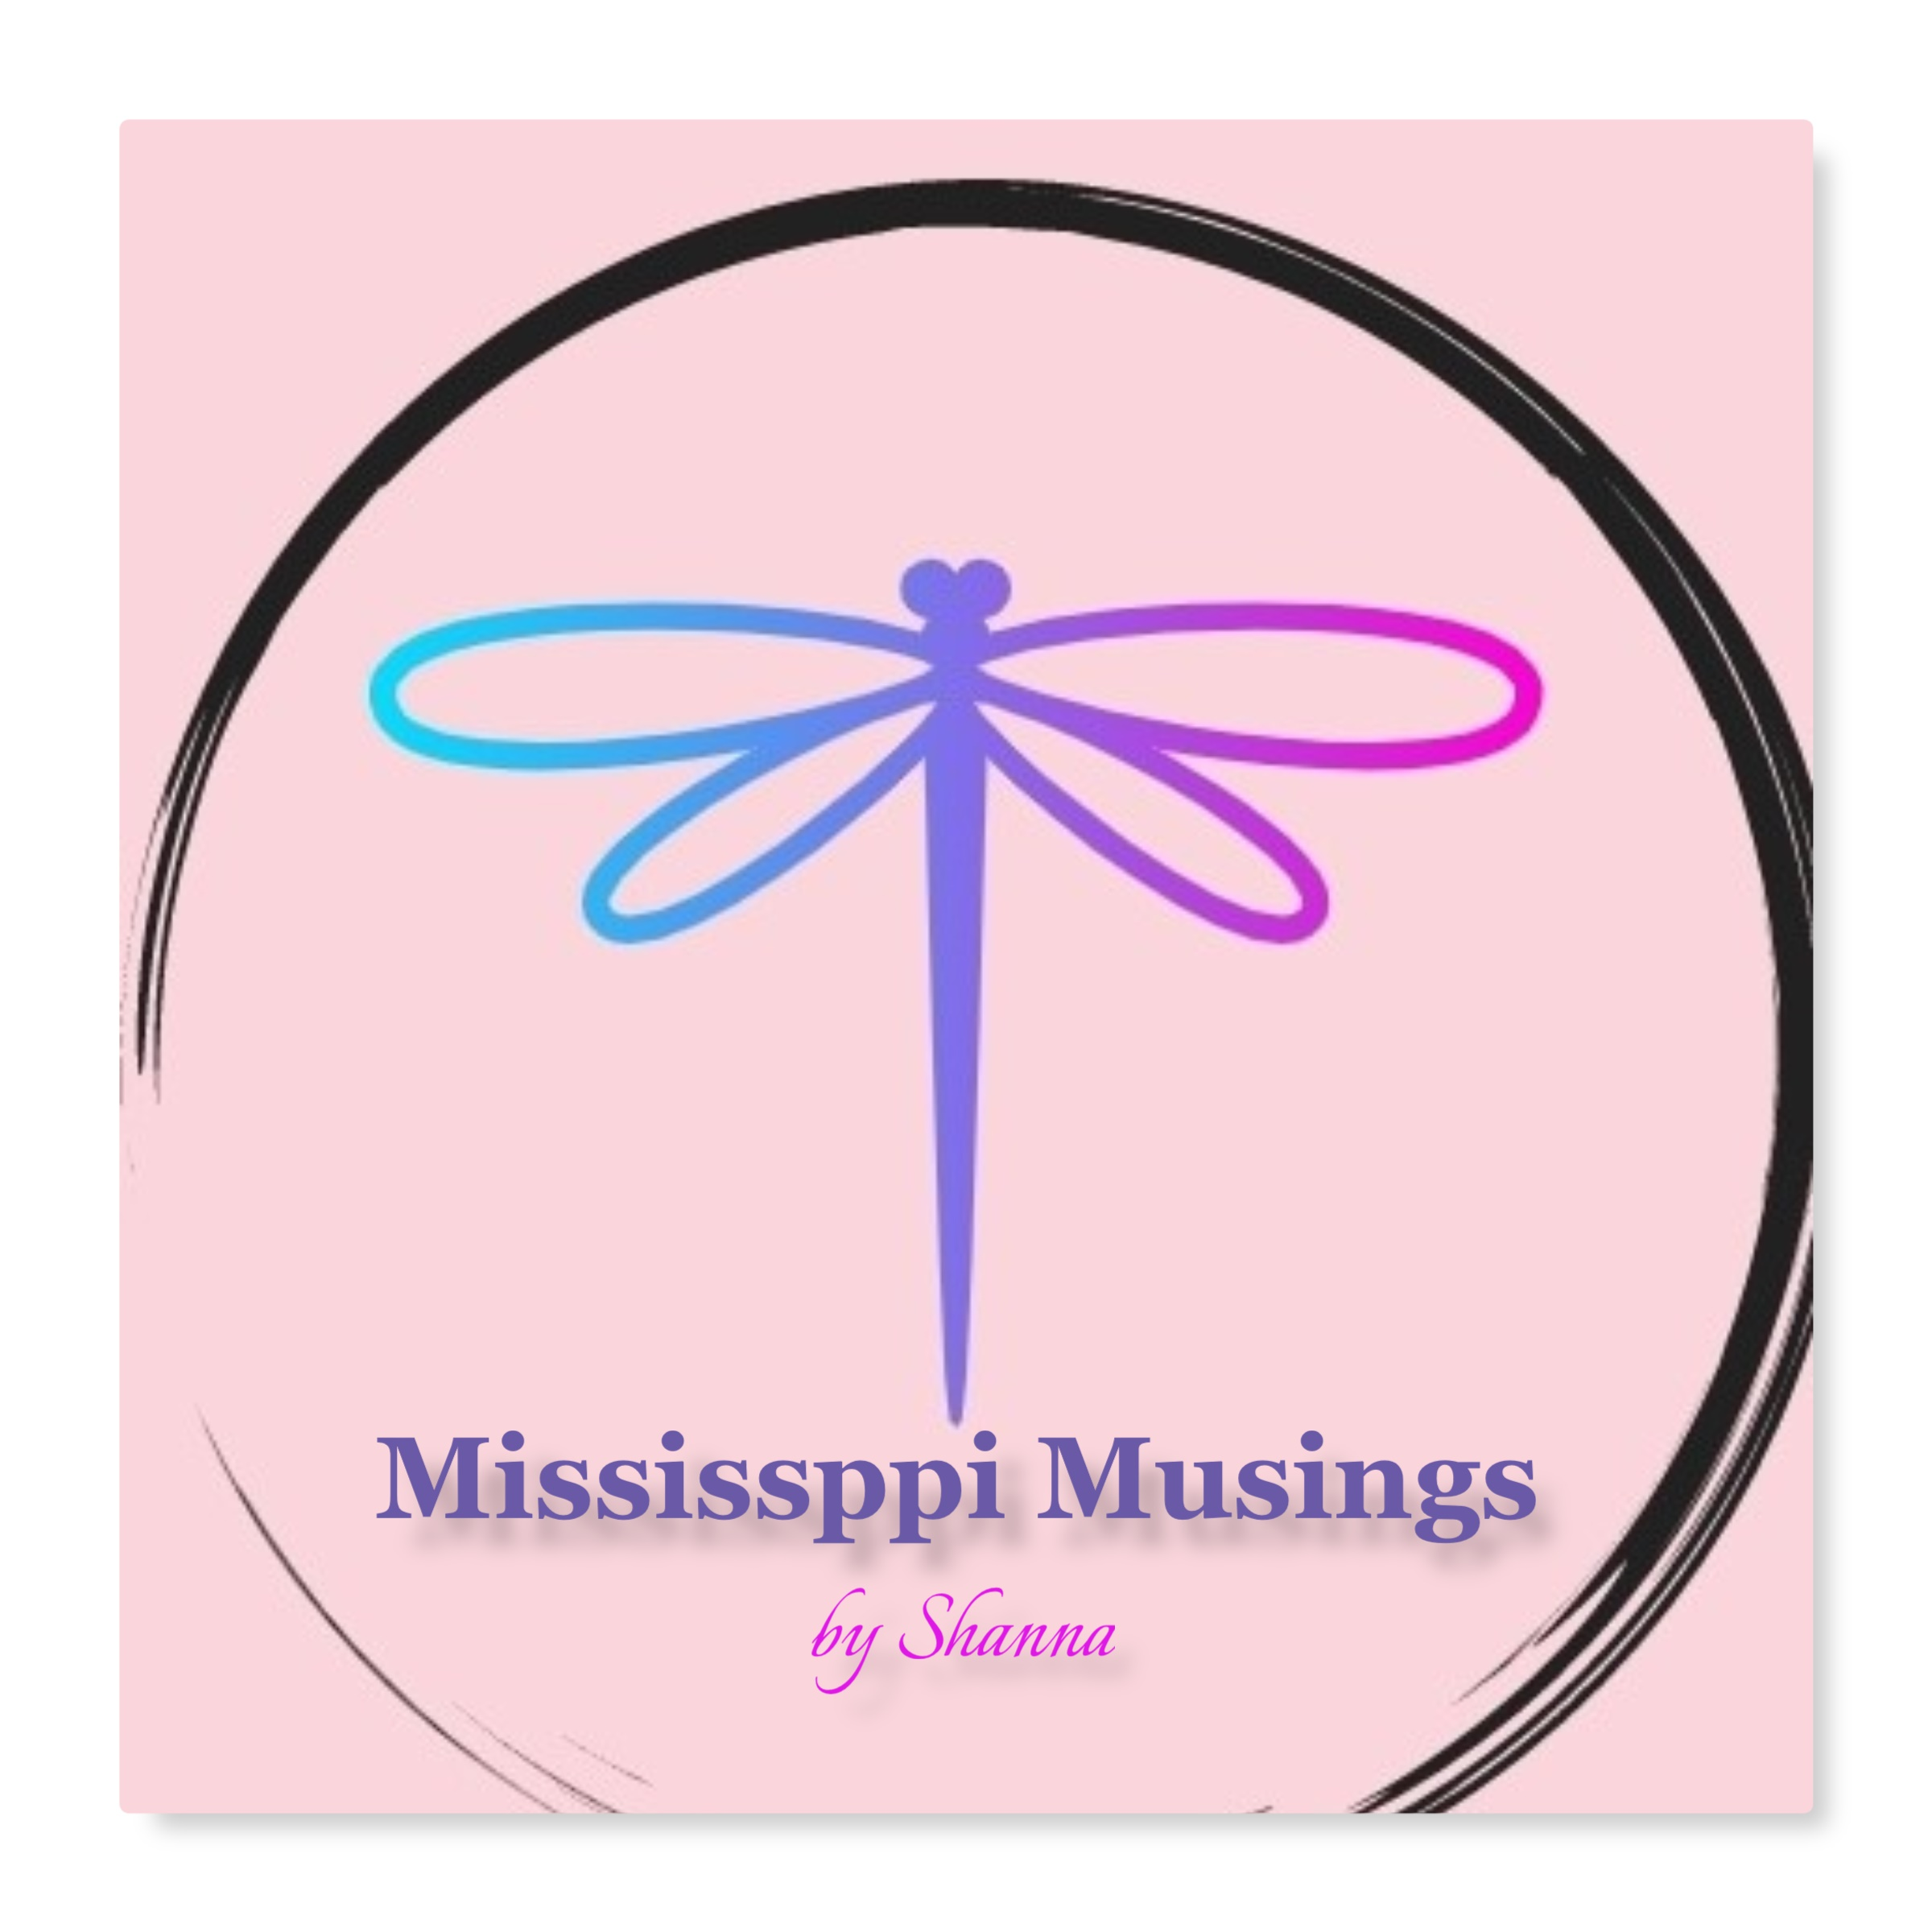 Mississippi Musings by Shanna